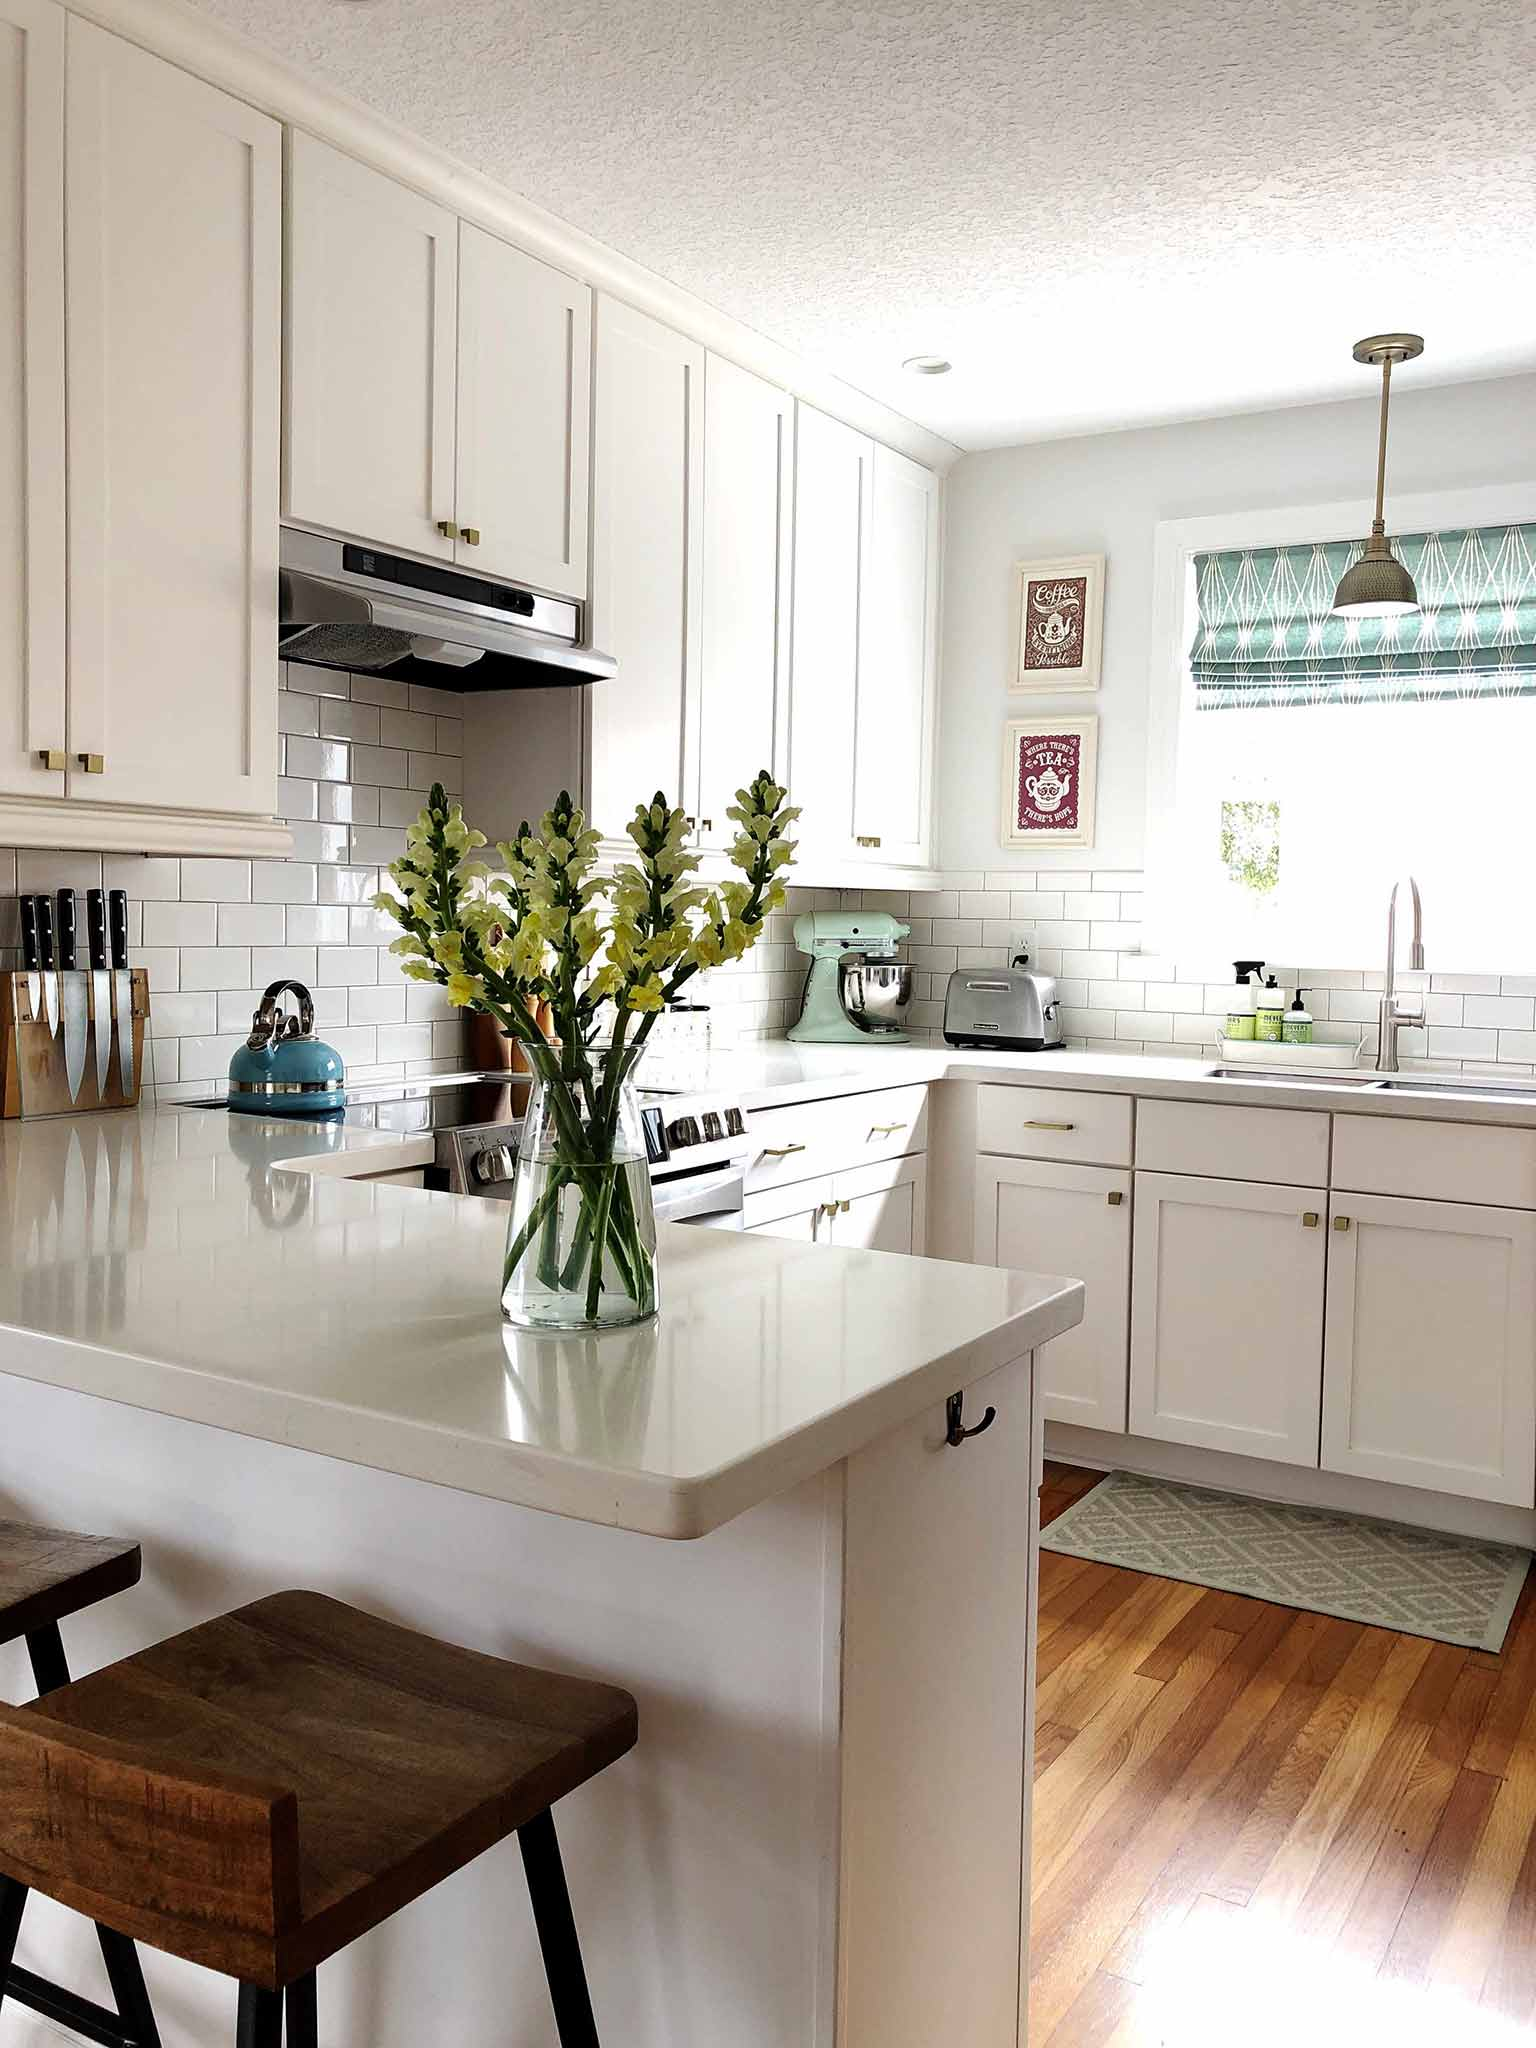 Clean white kitchen with vase of flowers on the penisular